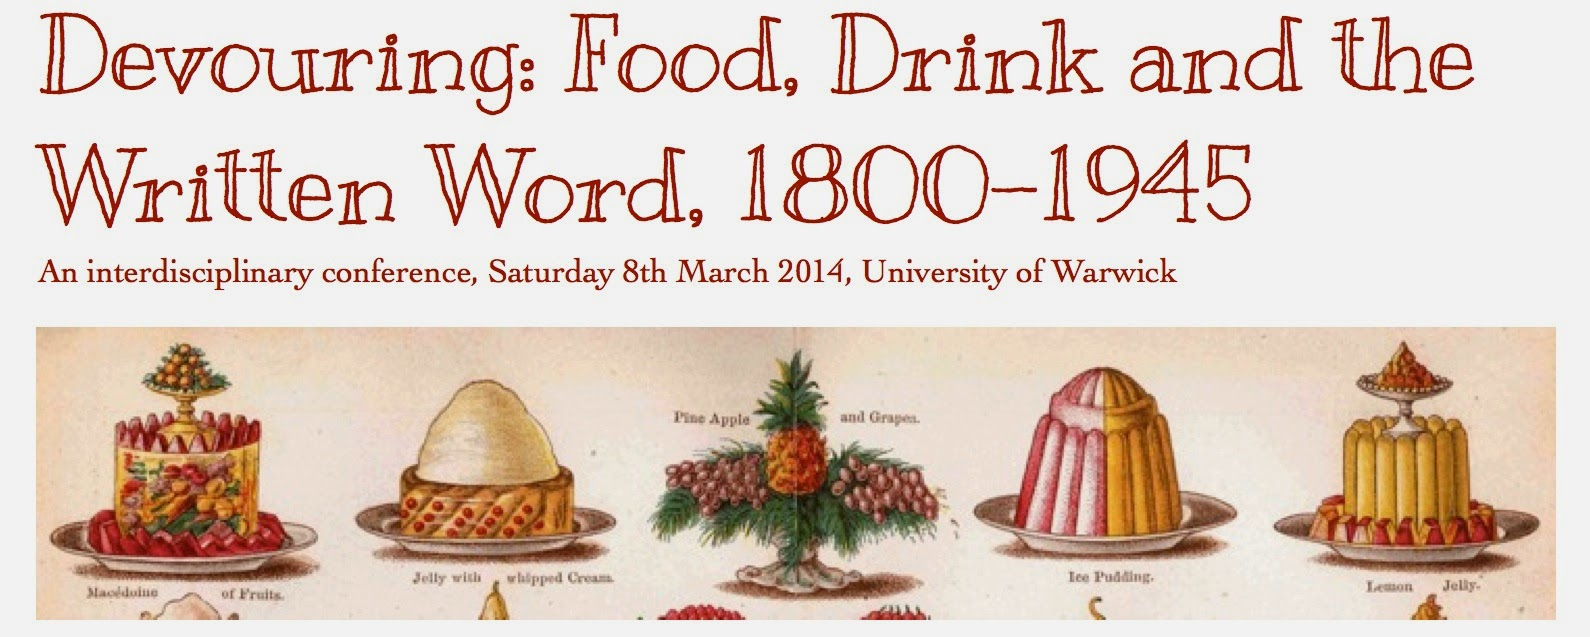 Devouring: Food, Drink and the Written Word, 1800-1945